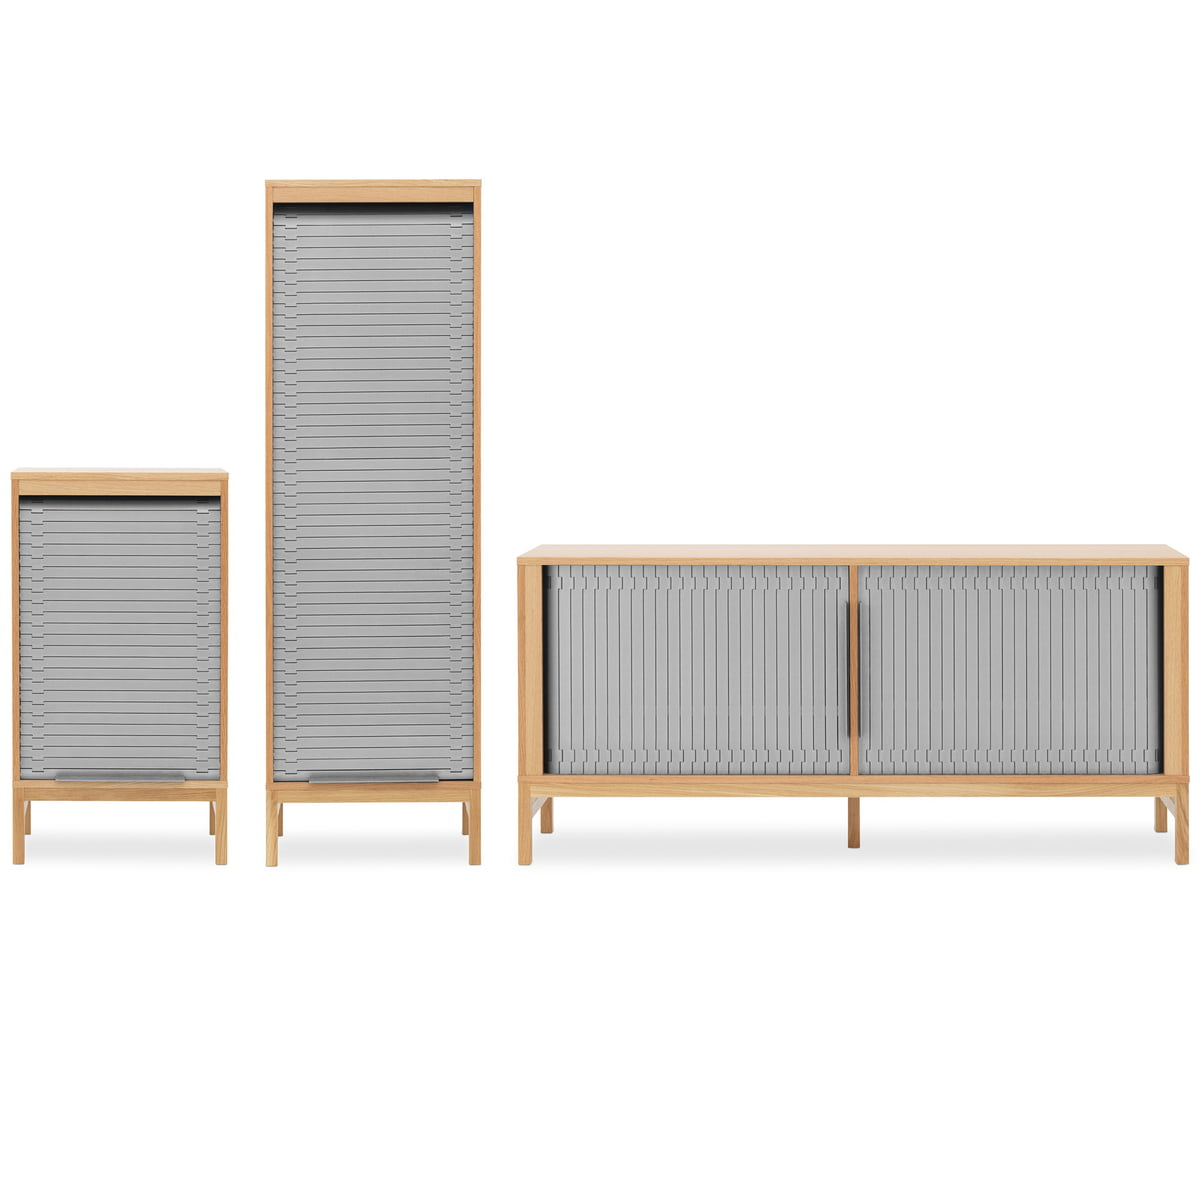 Jalousi sideboard von normann copenhagen for Sideboard niedrig